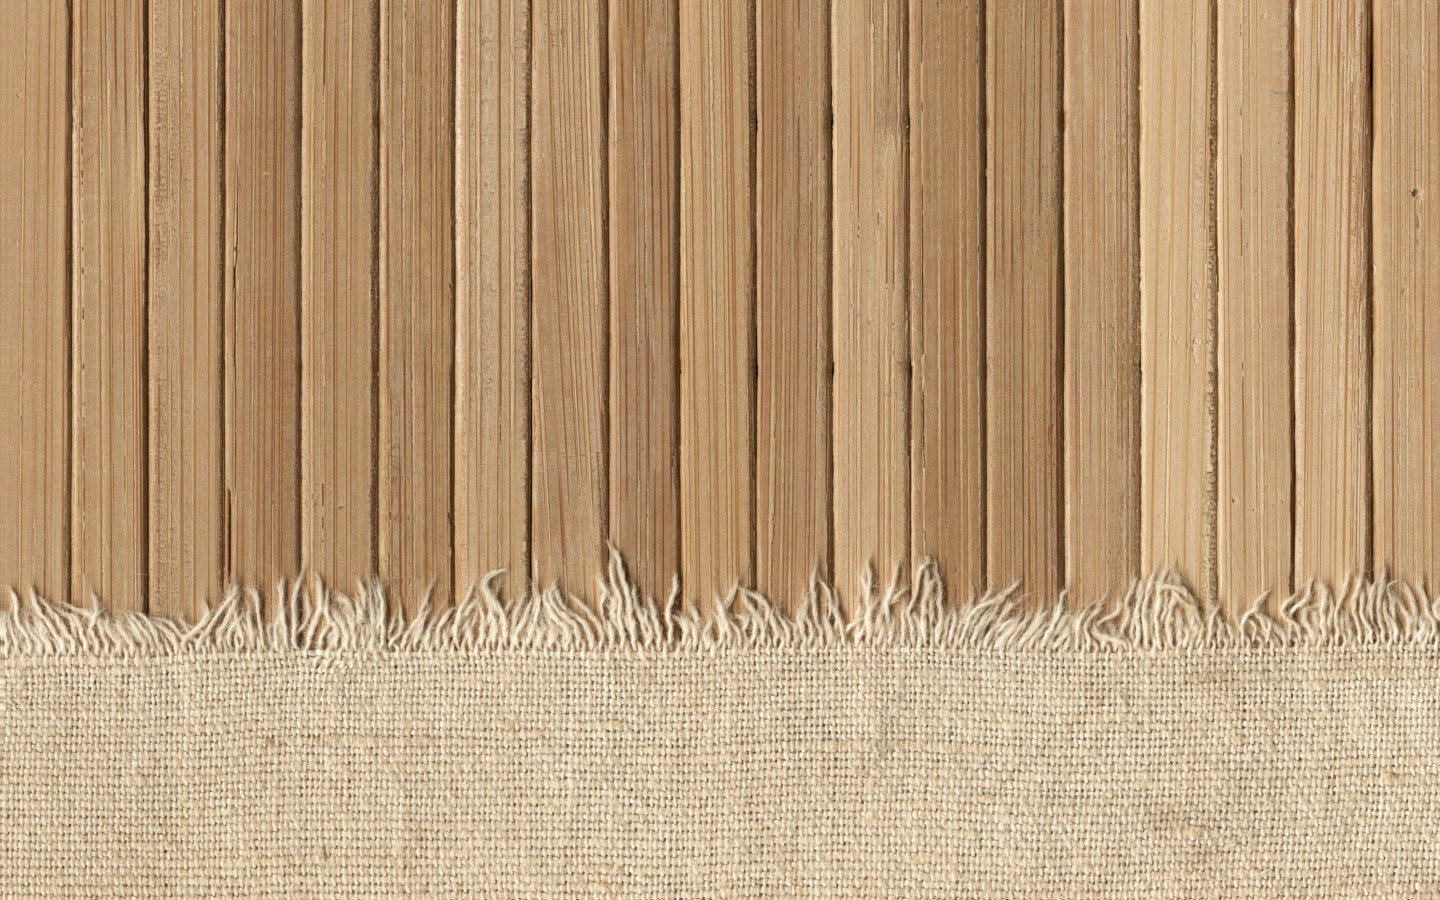 Free download Wood wallpaper ID:345882 hd 1440x900 for PC